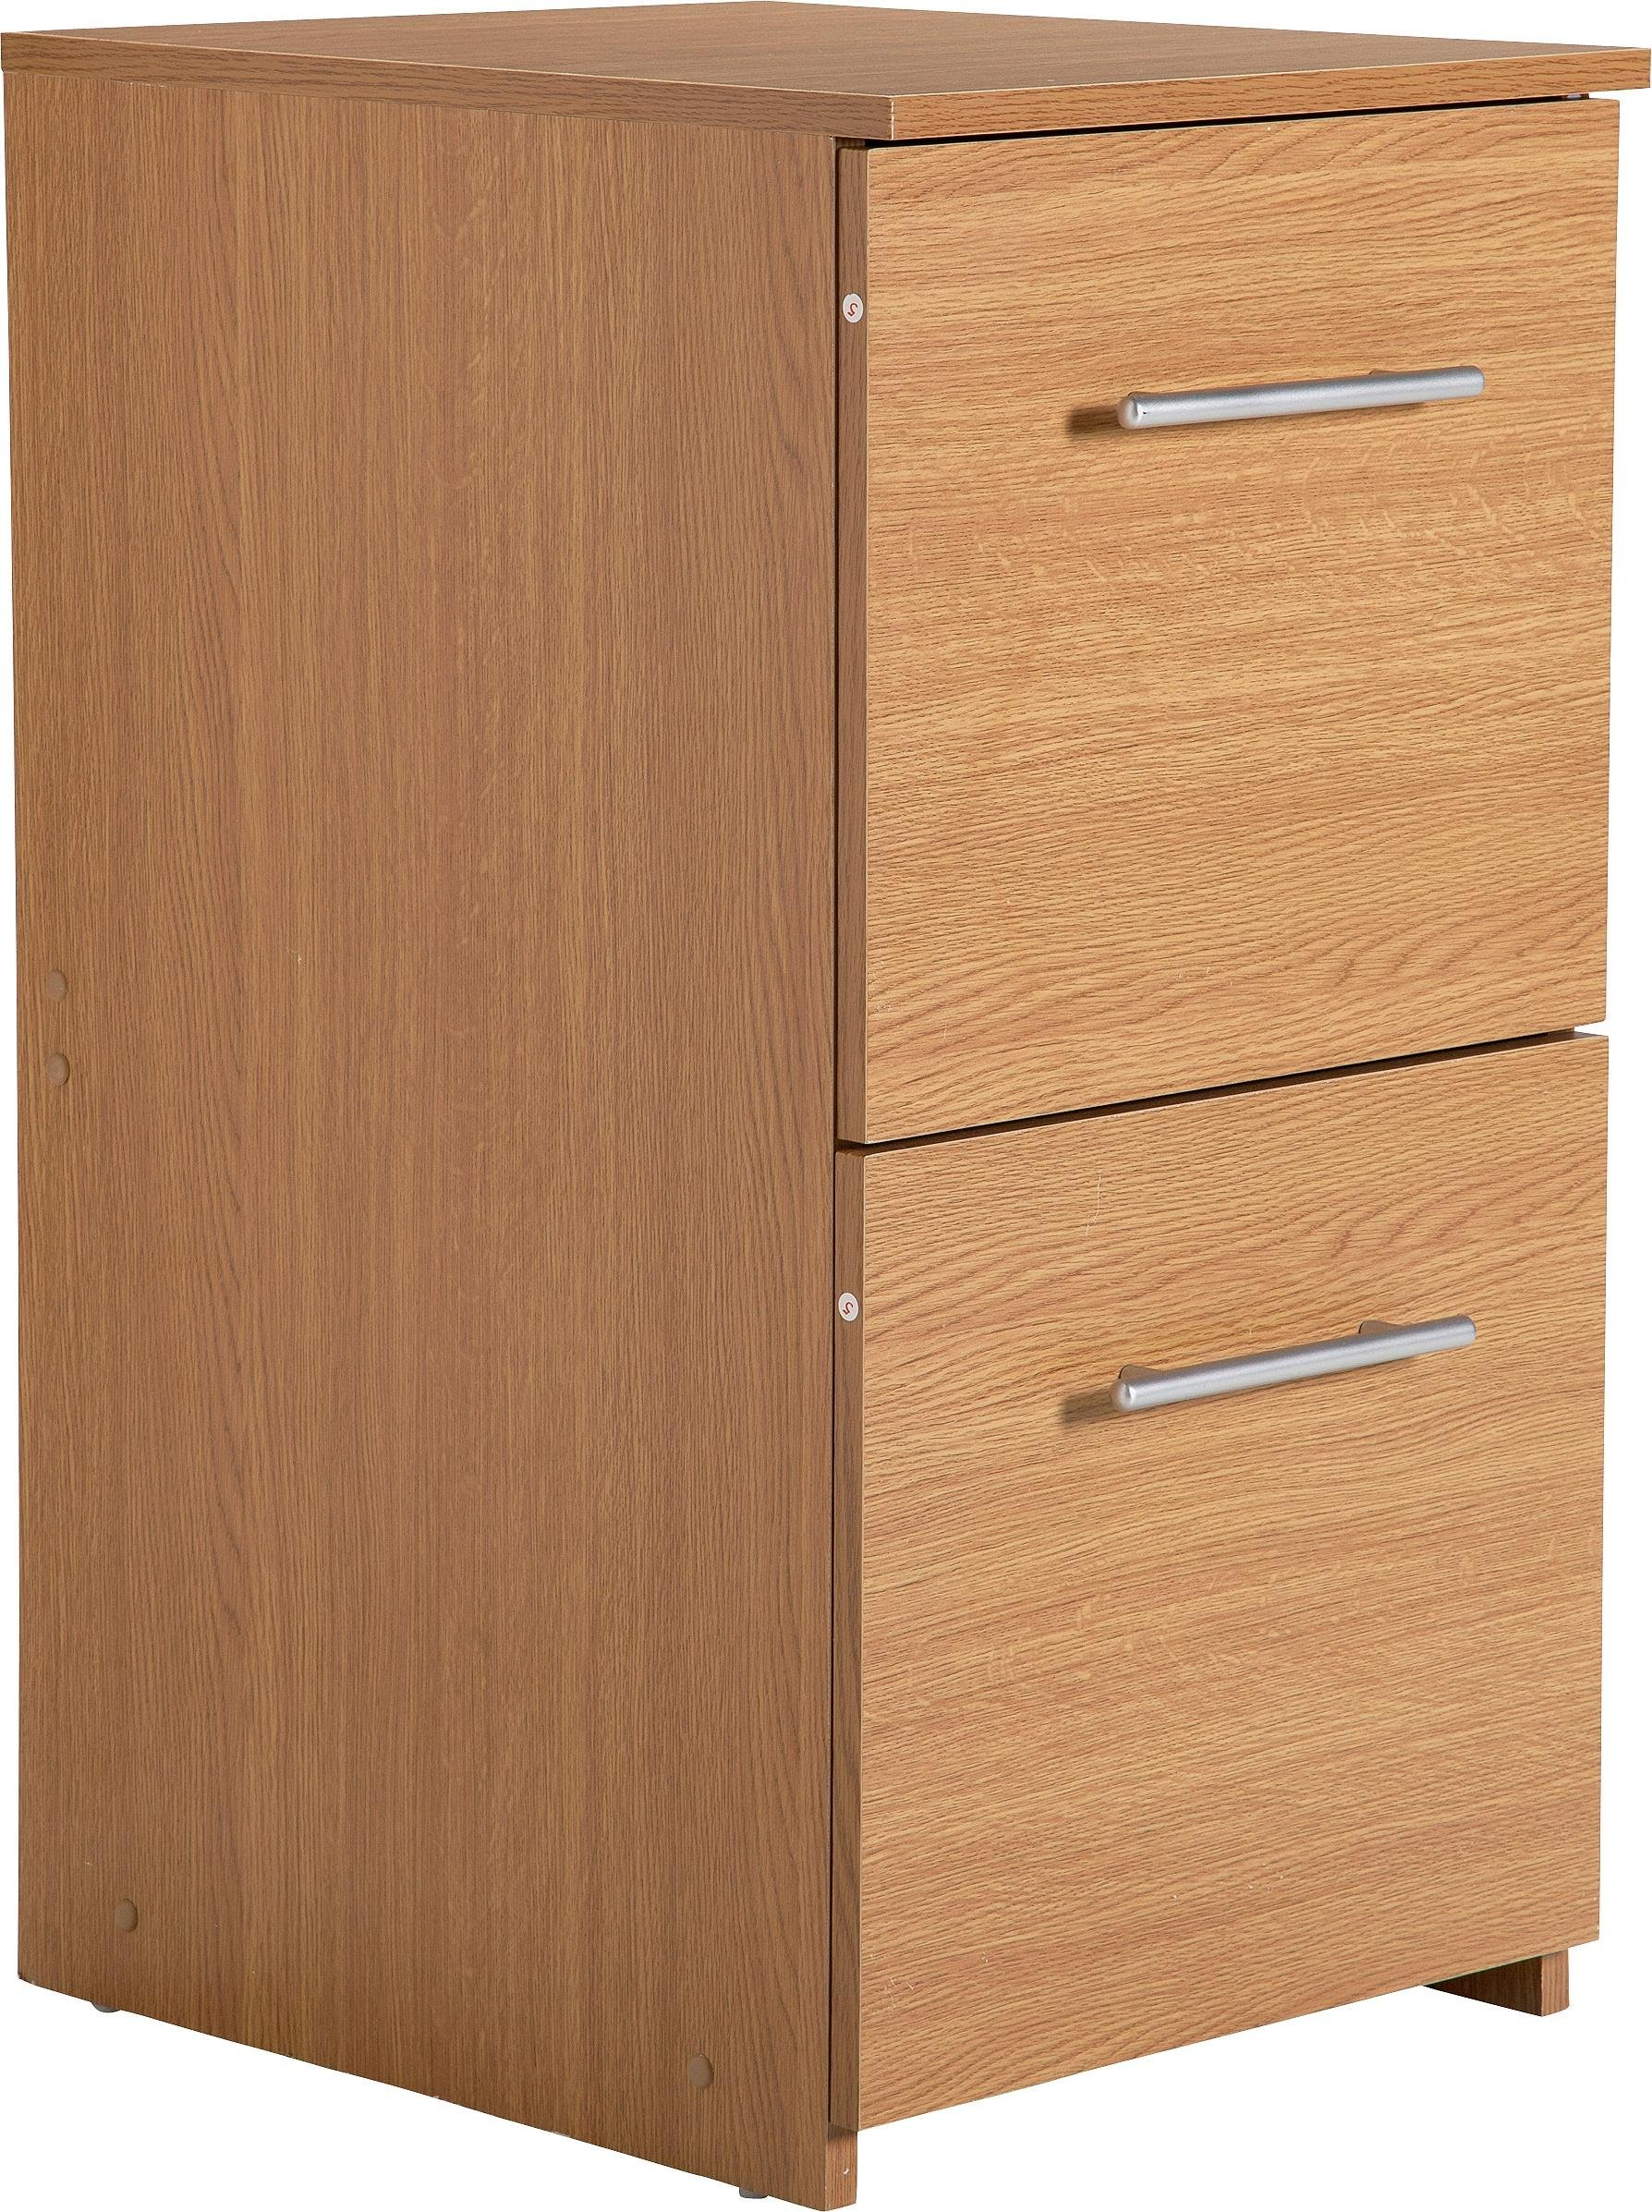 click to zoom - Small Filing Cabinet